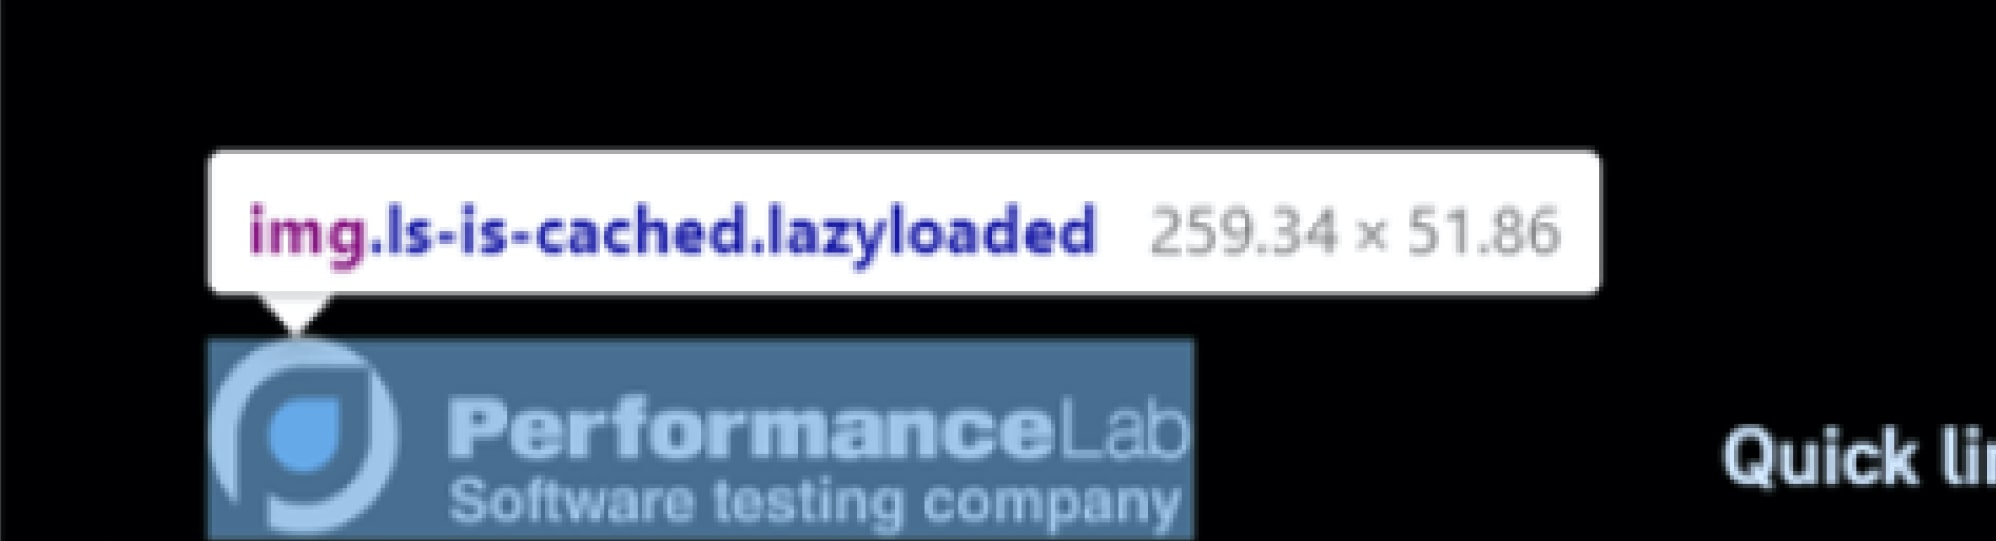 Testing the website load speed